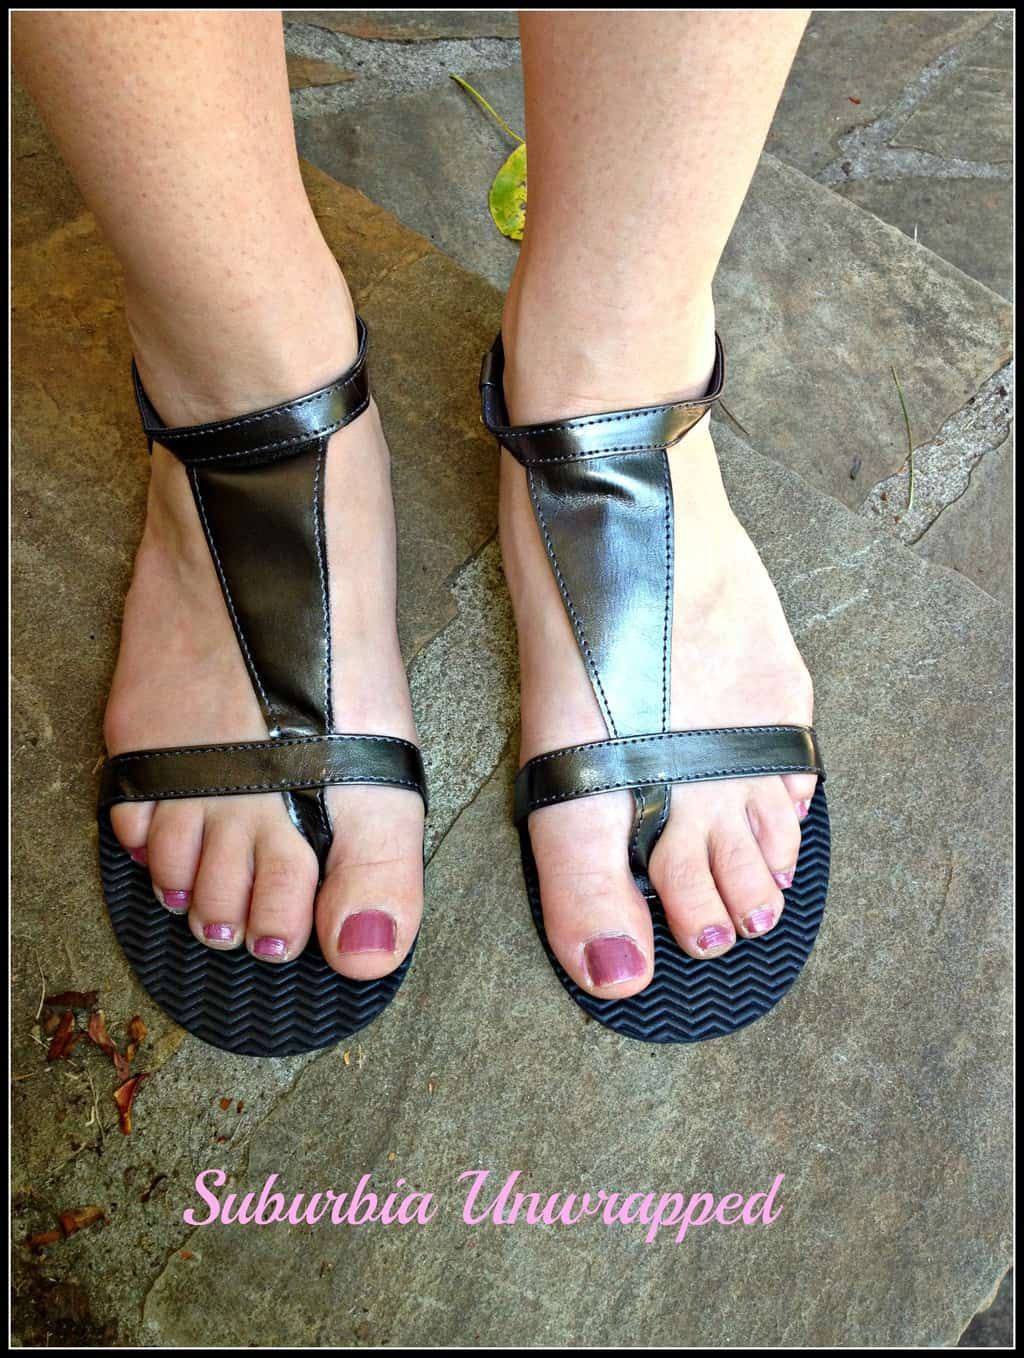 A Kushyfoot solution to sore and tired toes!